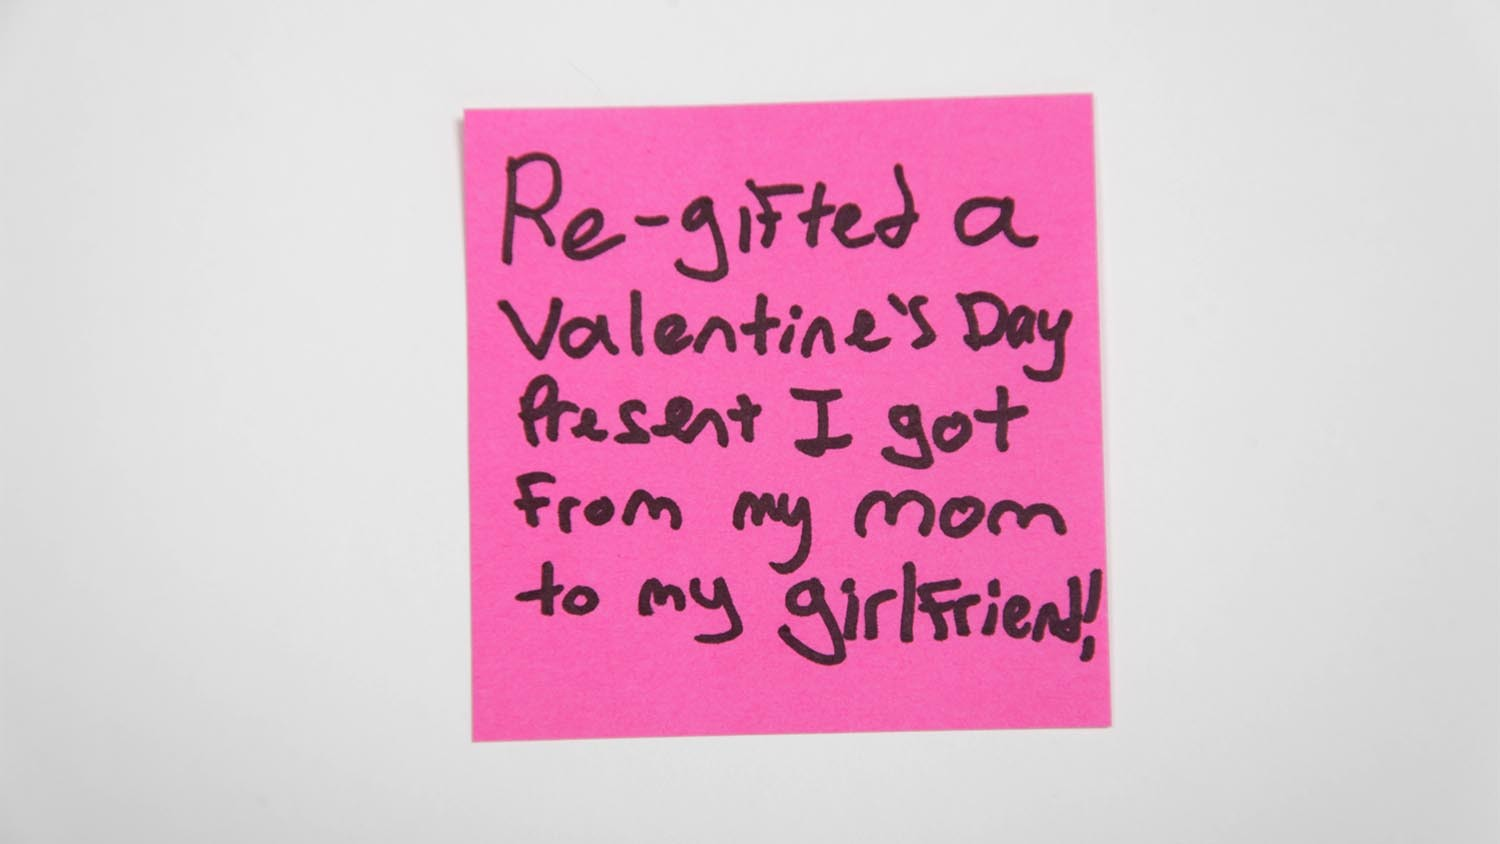 Sticky Note: Re-gifted